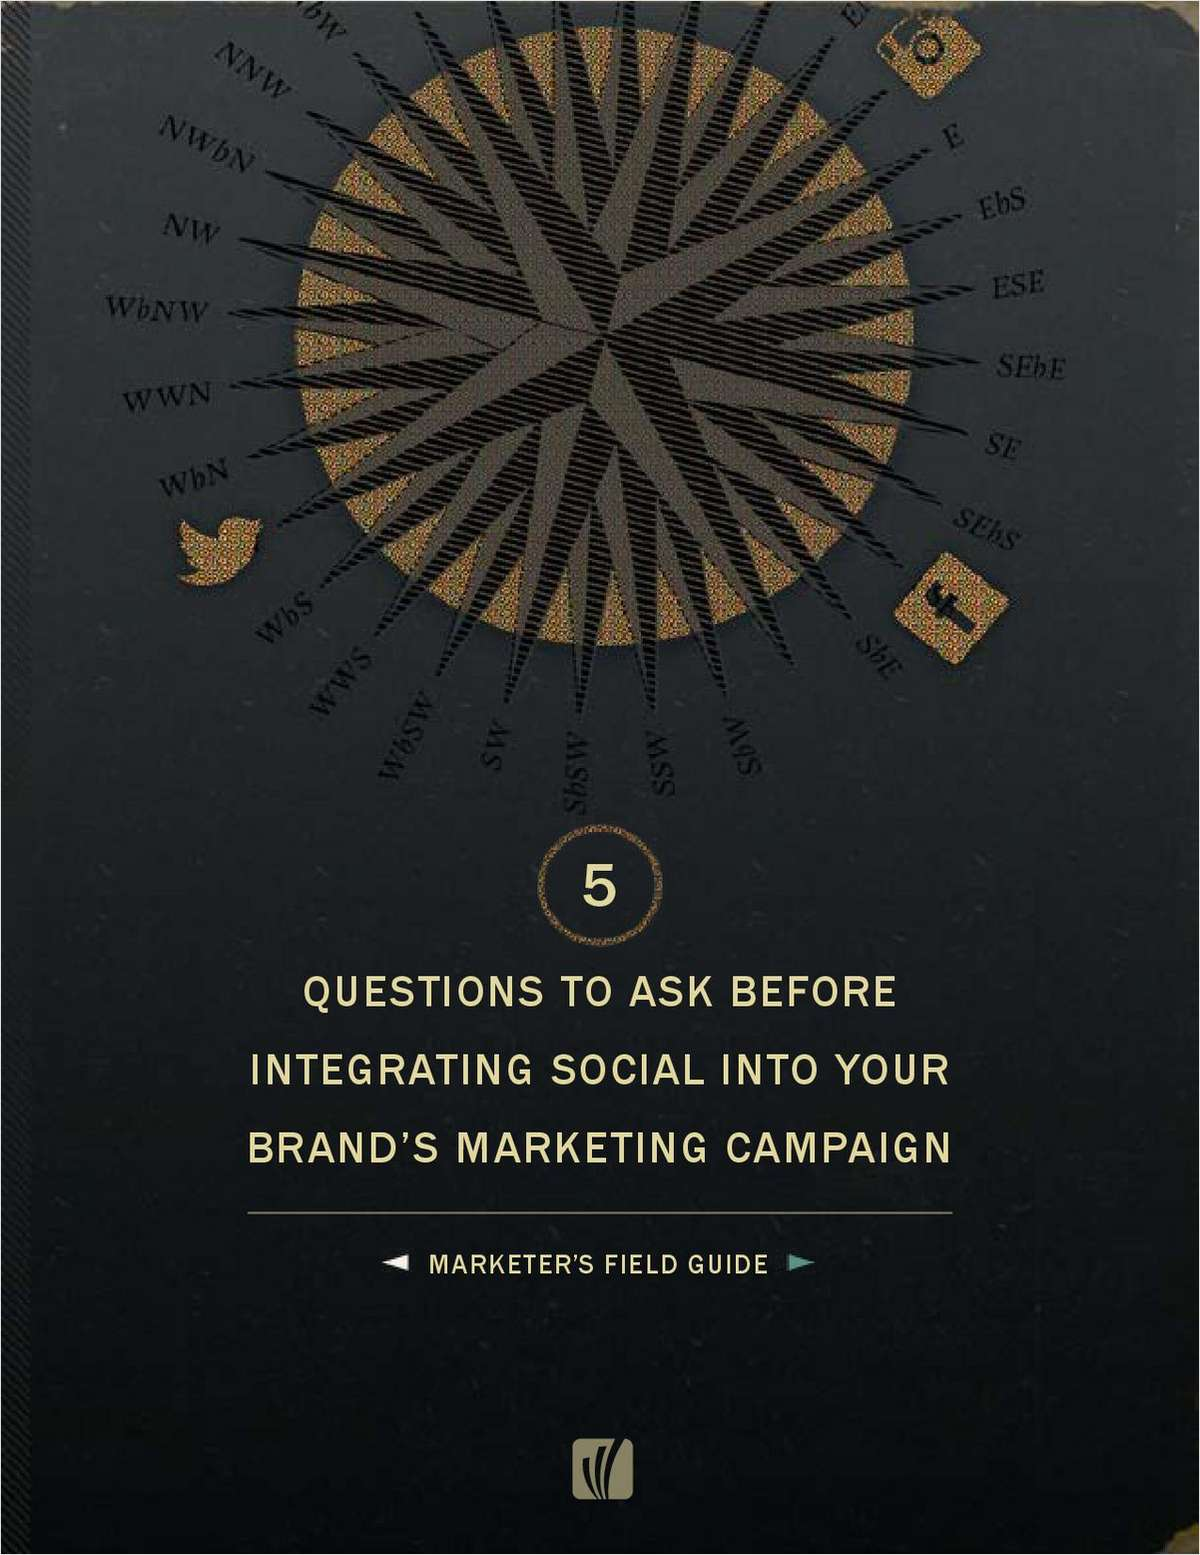 5 Questions To Ask Before Integrating Social Into Your Brand's Marketing Campaign